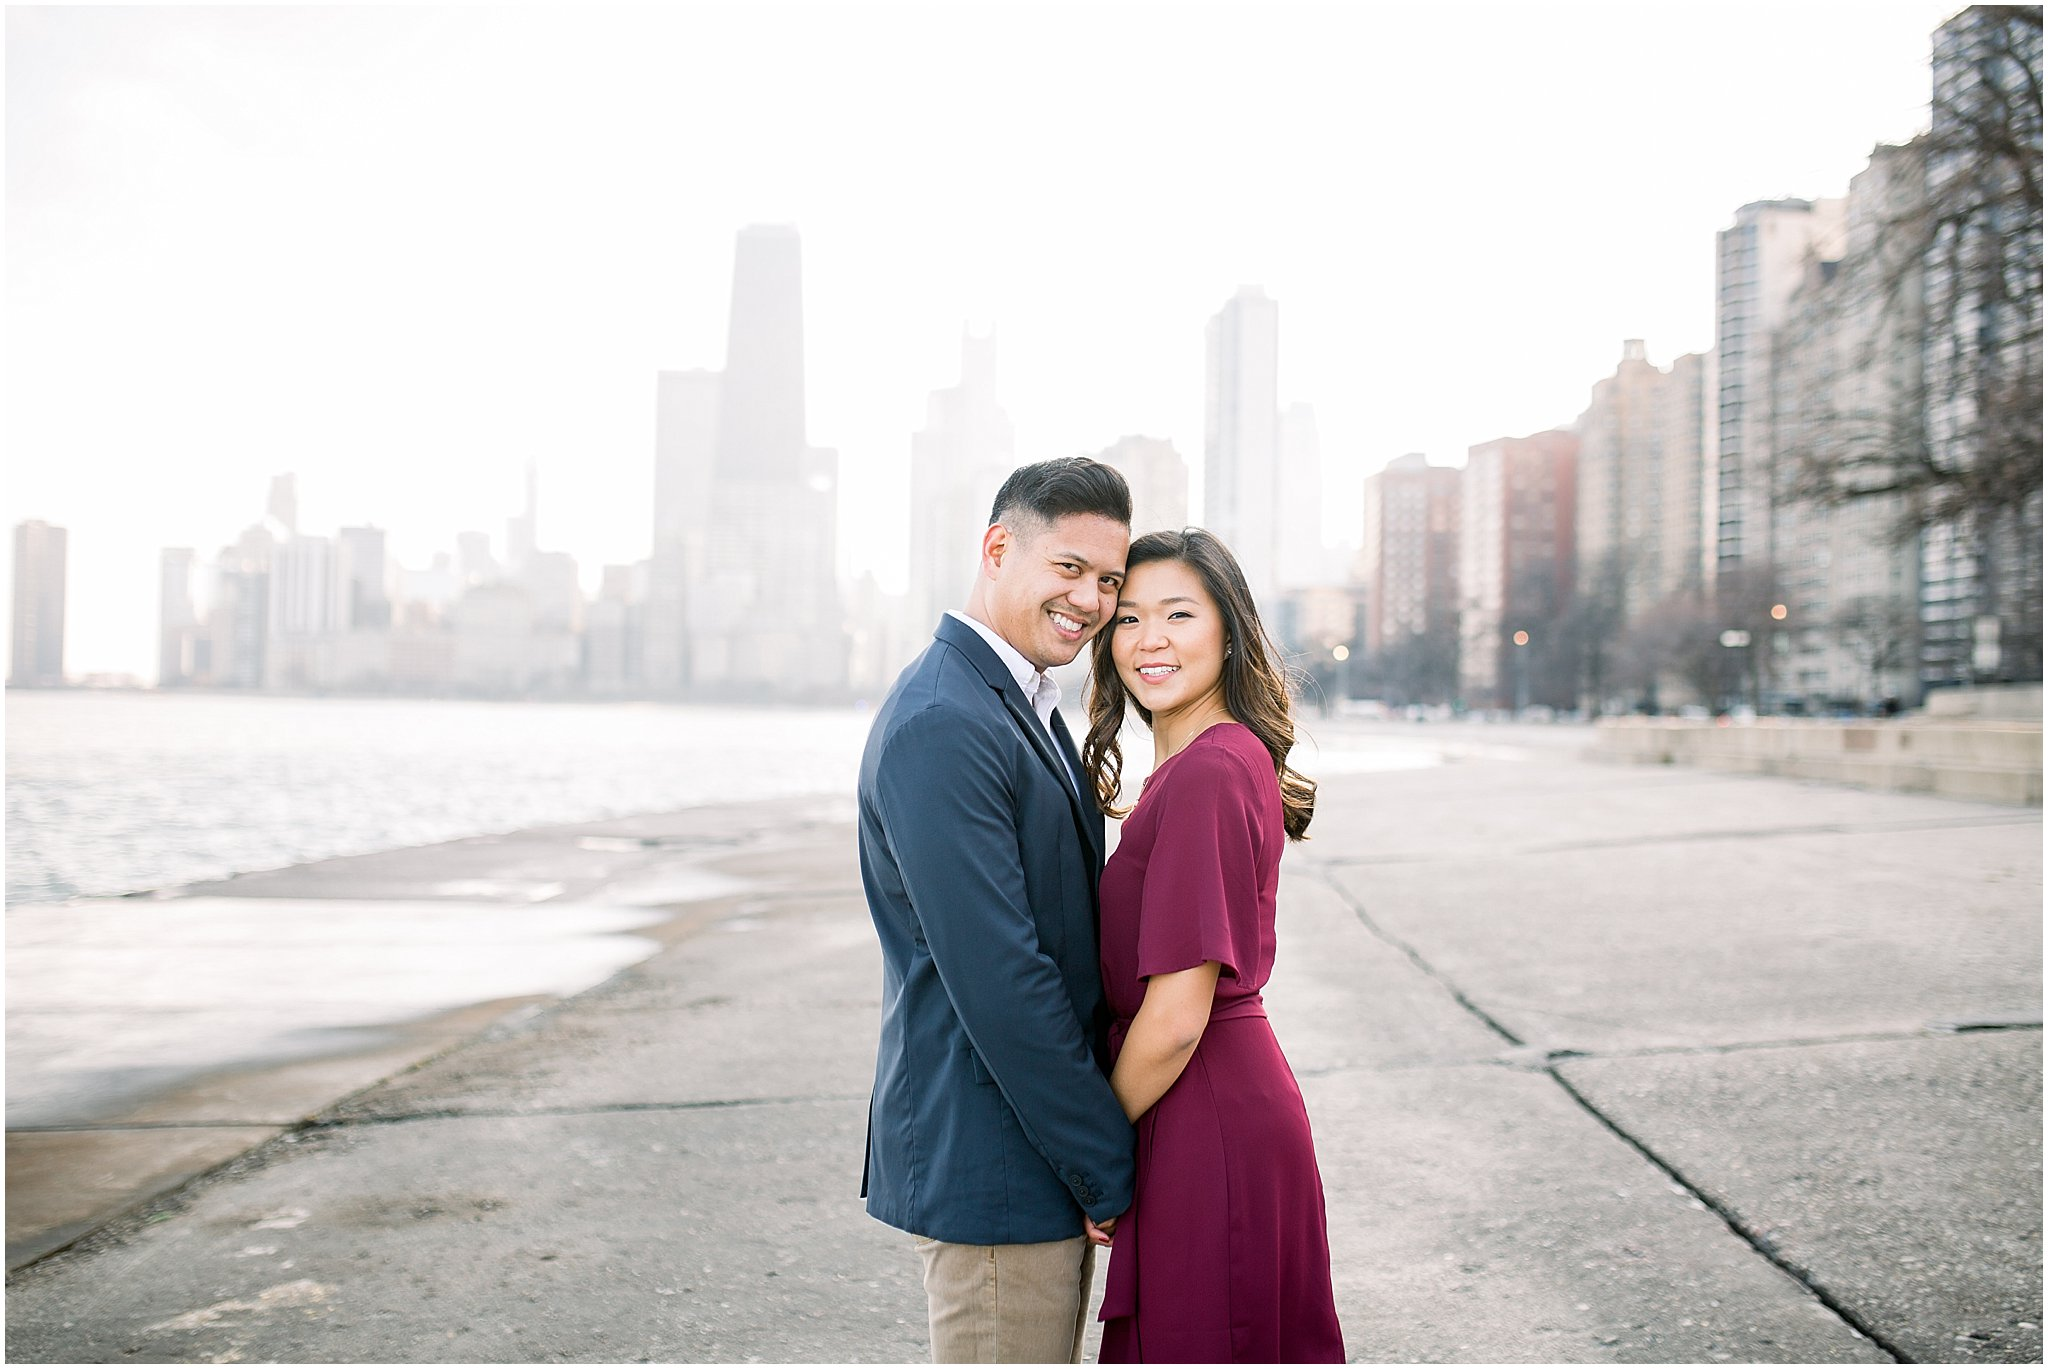 winter-downtown-engagement-session_0021.jpg